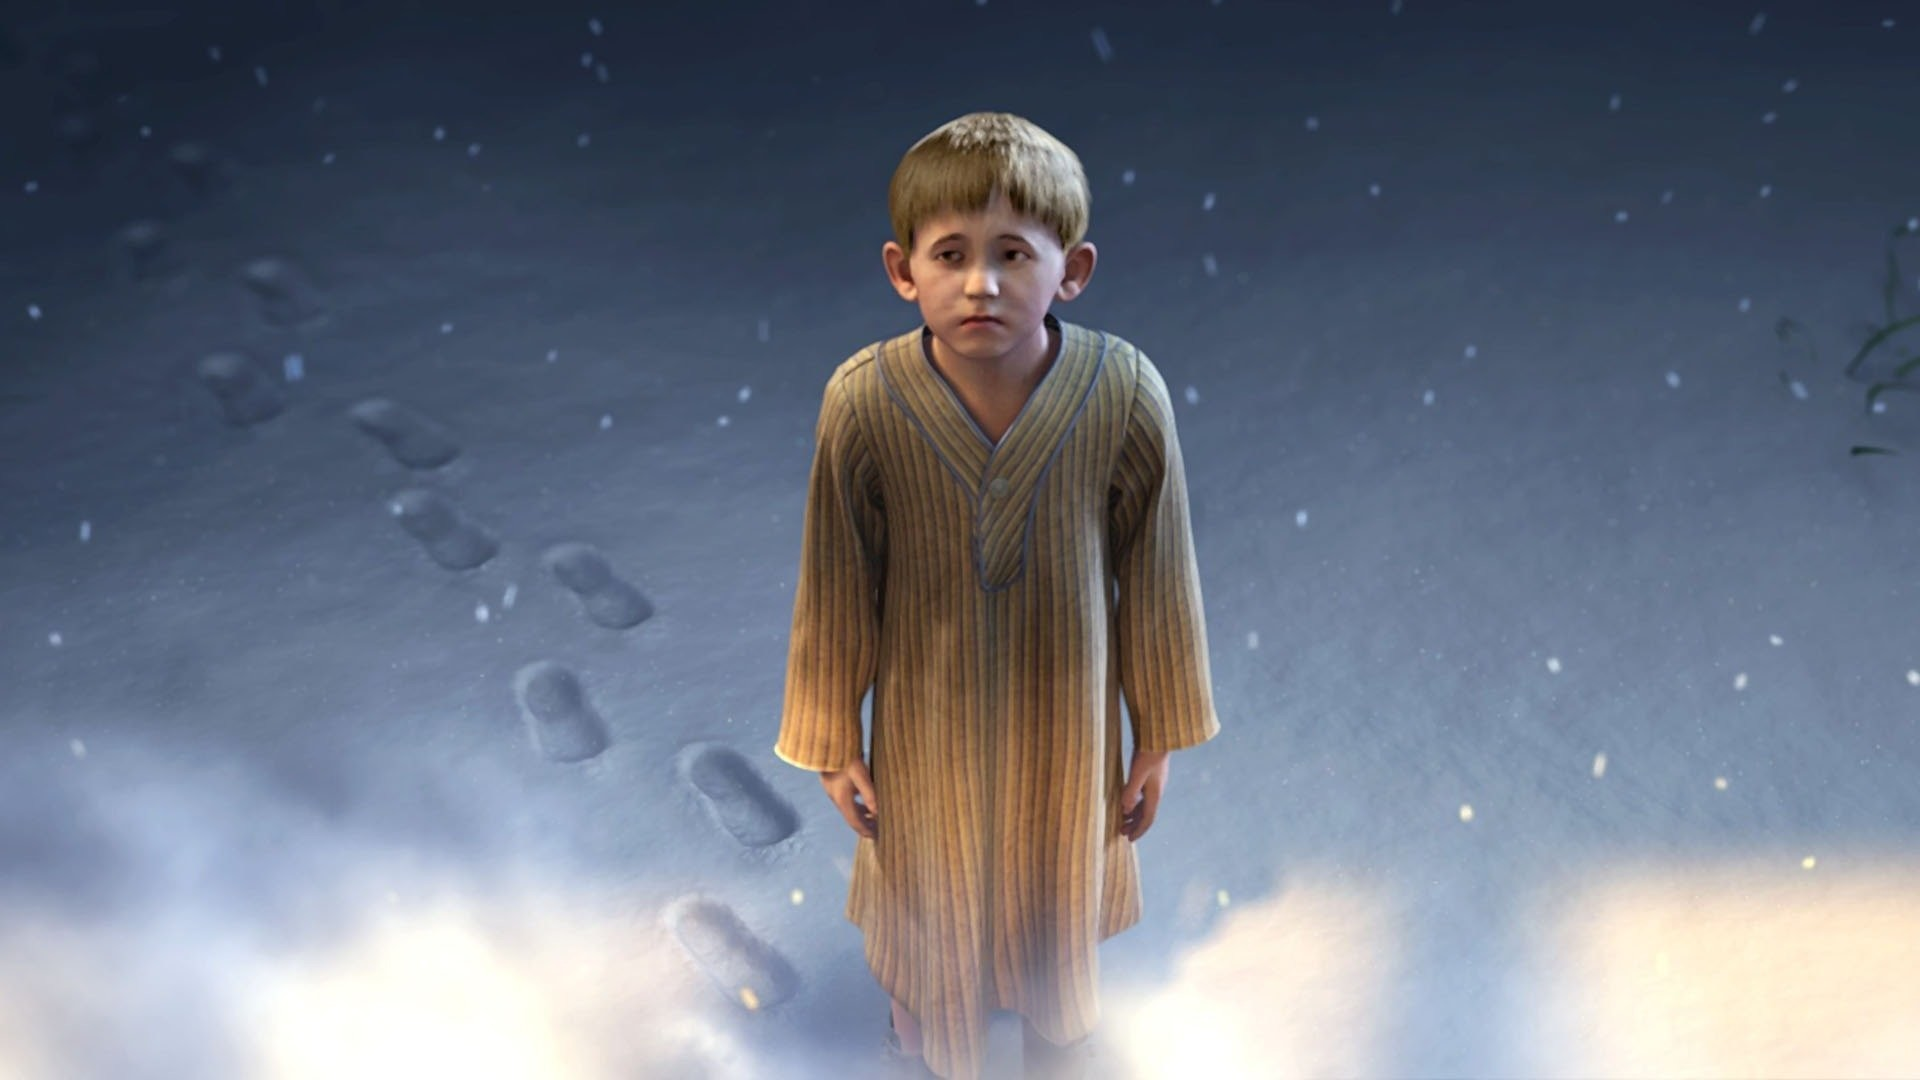 1920x1080 Great Josh Hutcherson Polar Express Wallpaper Free Wallpaper For Desktop  and Mobile in All Resolutions Free